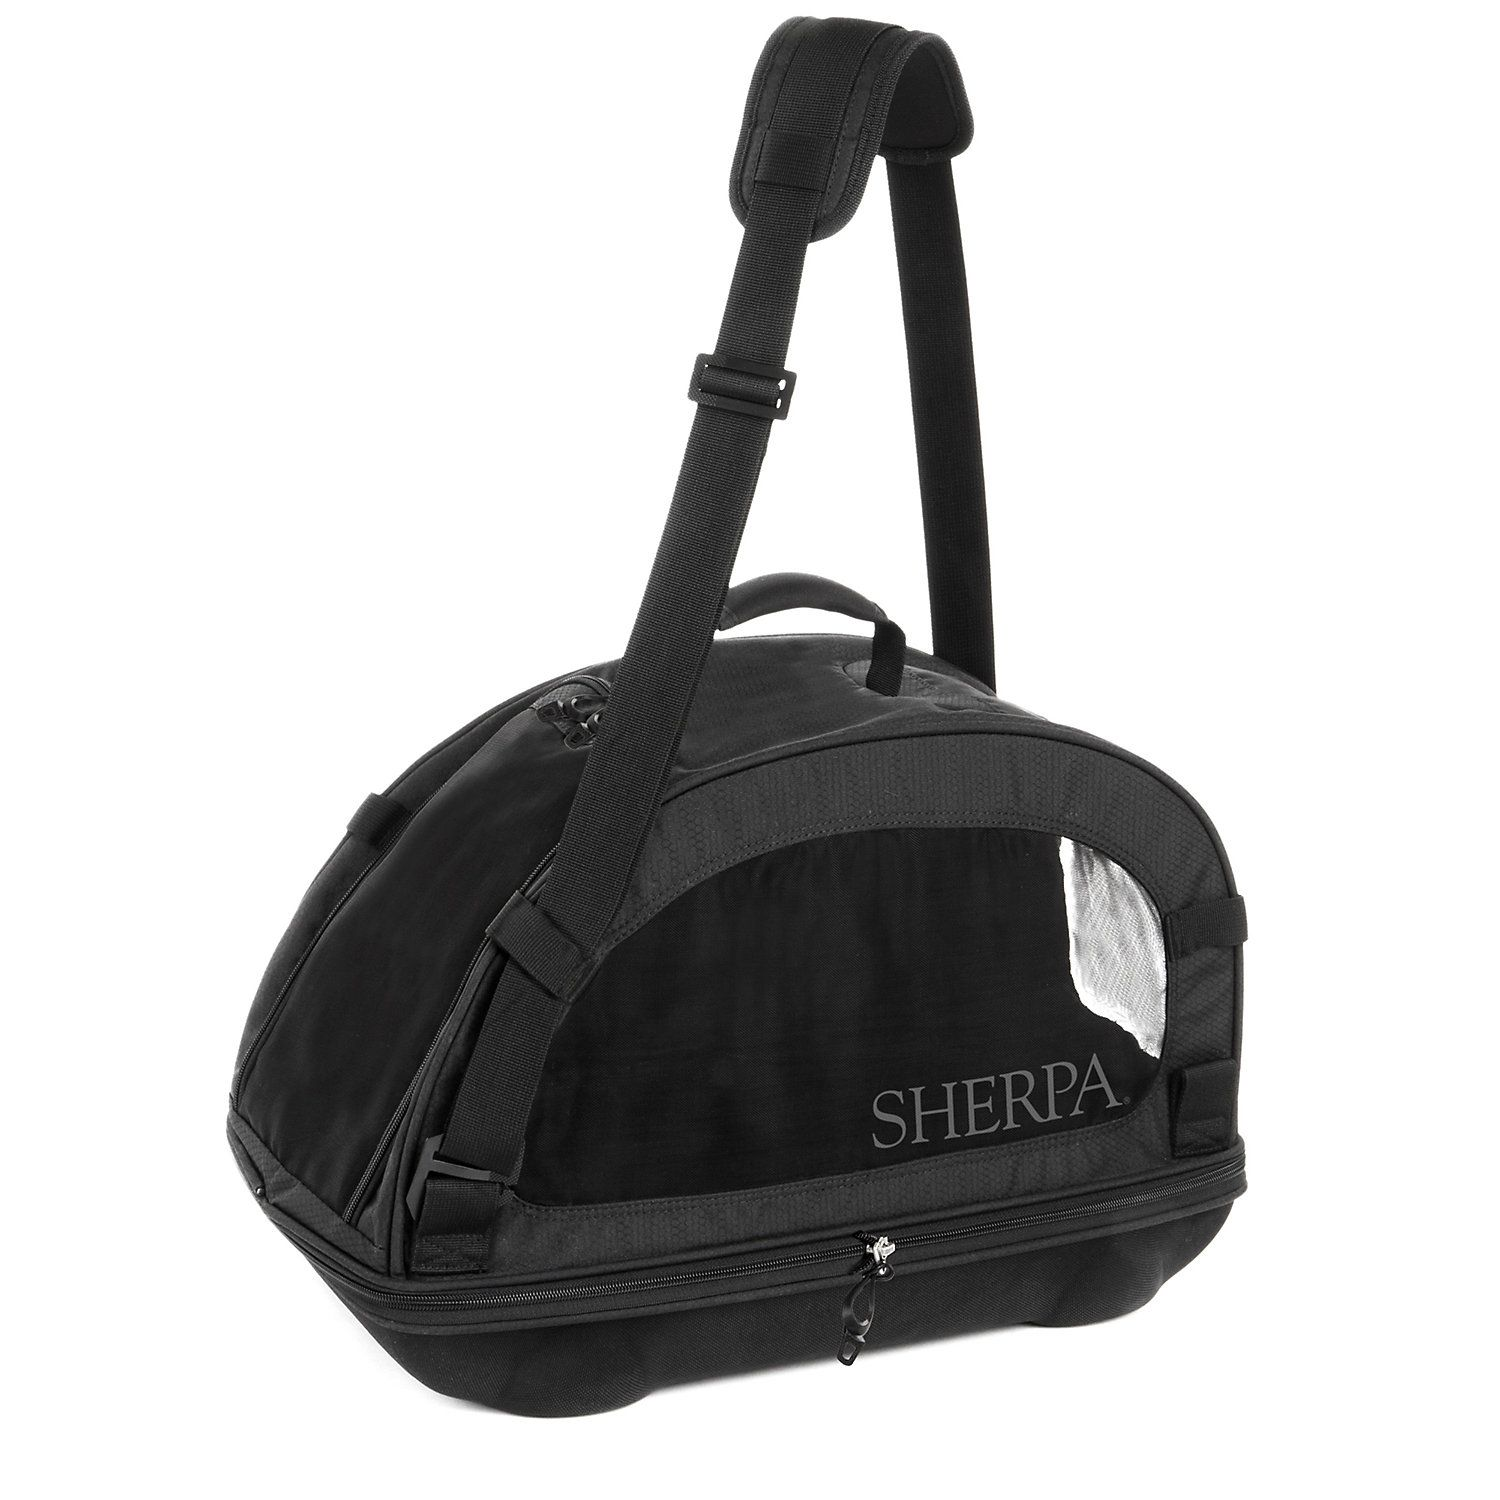 Sherpa Comfort Ride Black Airline approved pet carrier